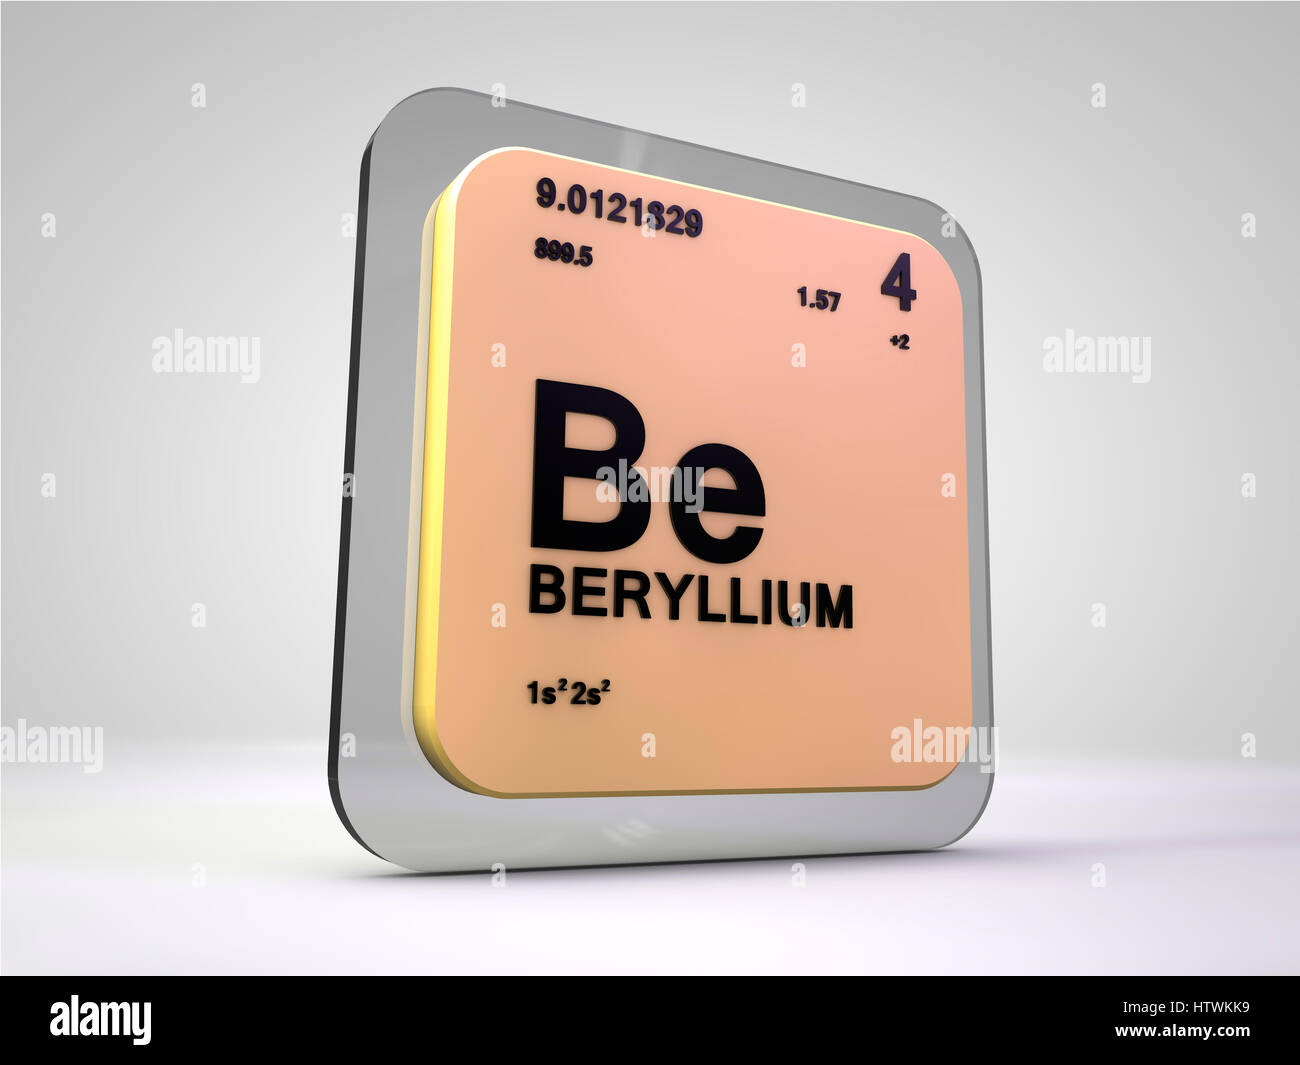 Beryllium be chemical element periodic table 3d render stock beryllium be chemical element periodic table 3d render biocorpaavc Images